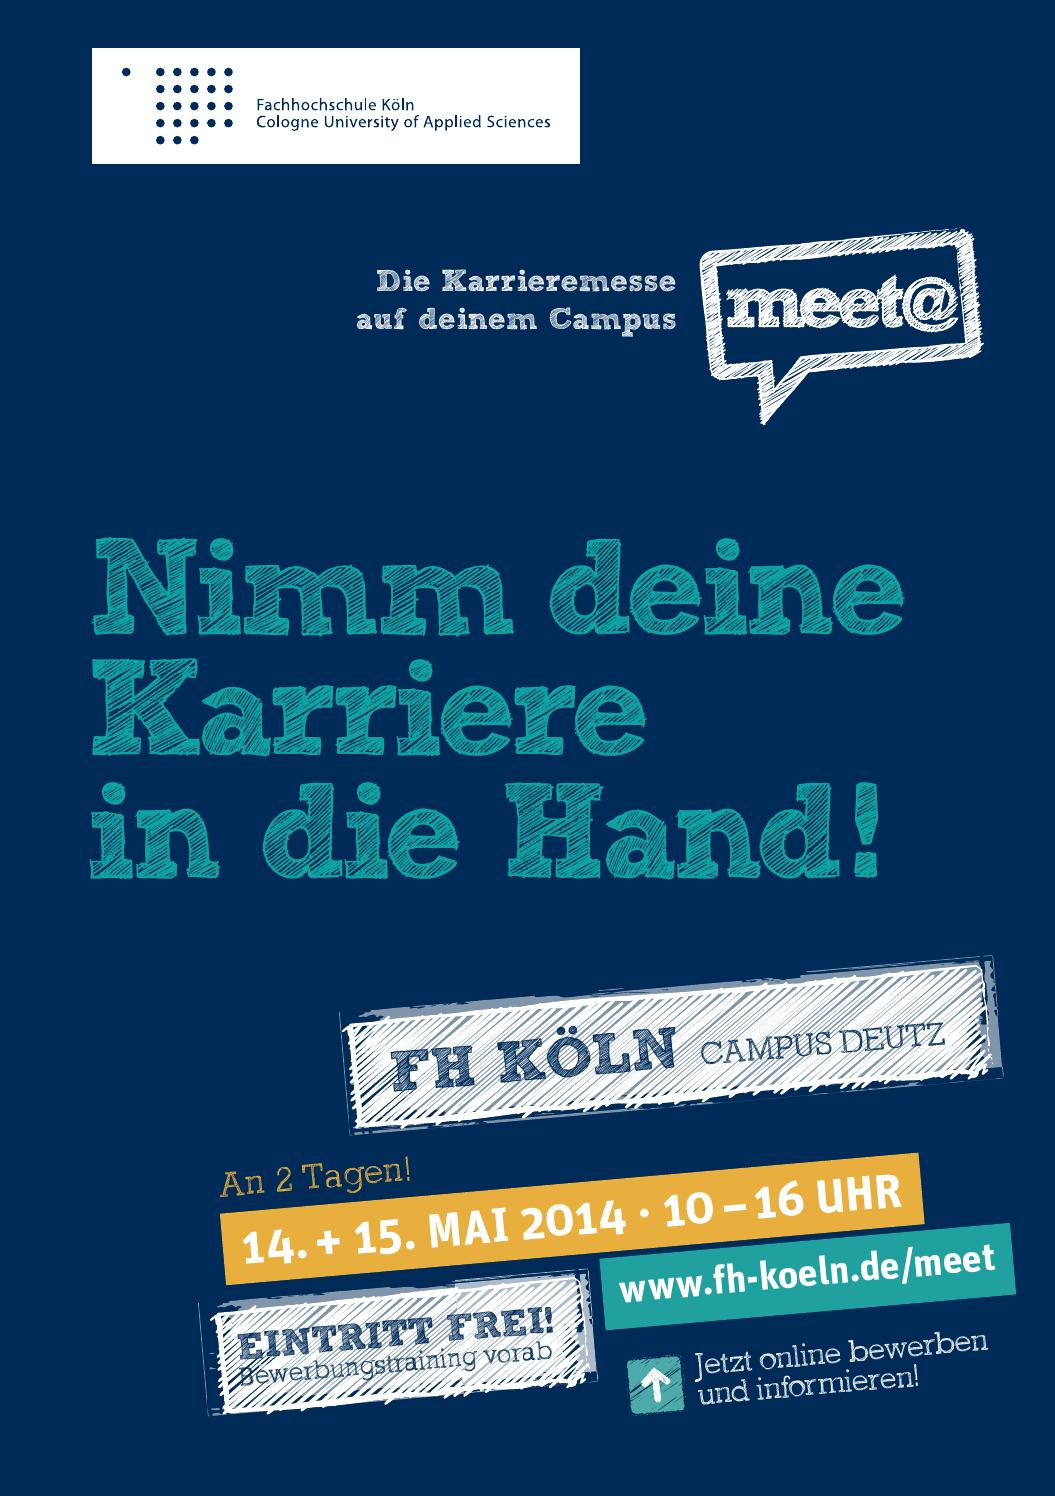 messeguide meetfh koeln 2014 by iqb career services ag issuu - Fh Koln Bewerbung